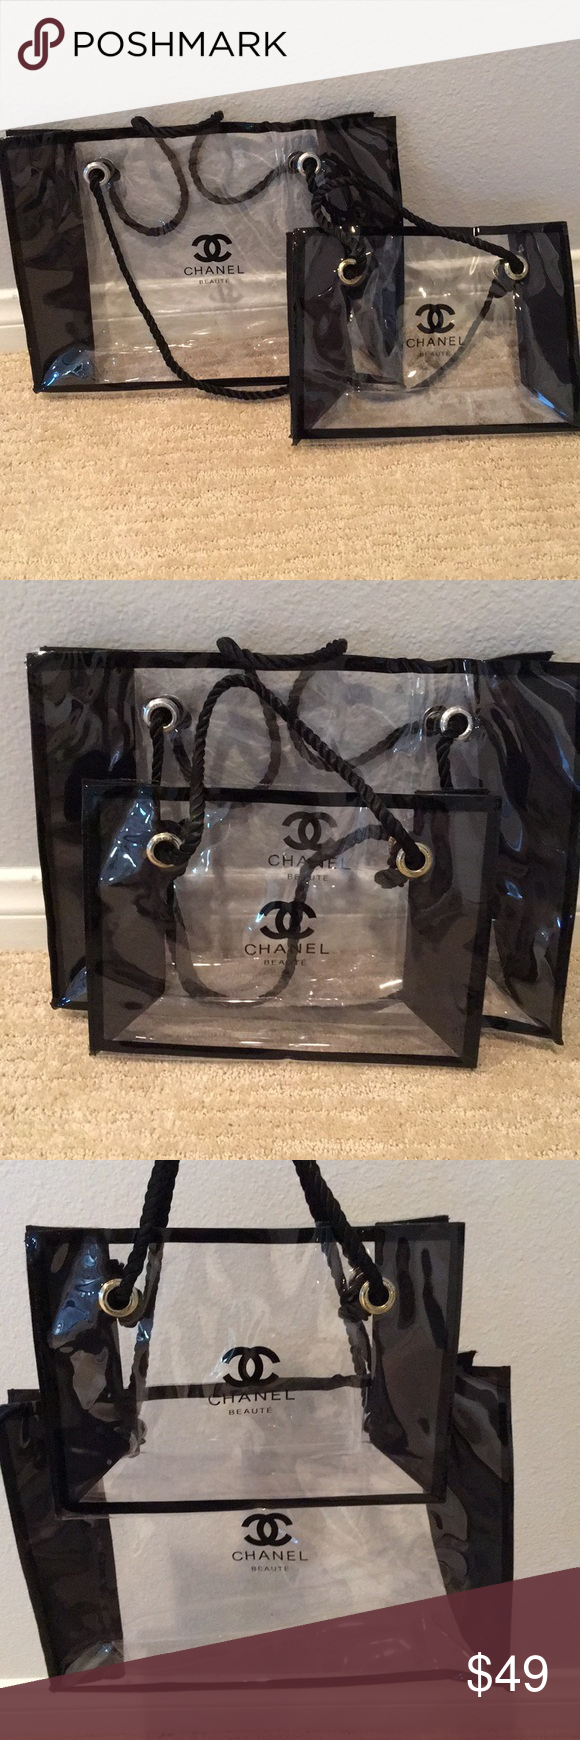 Chanel Beauty perfume makeup Tote bag set This is VIP gift